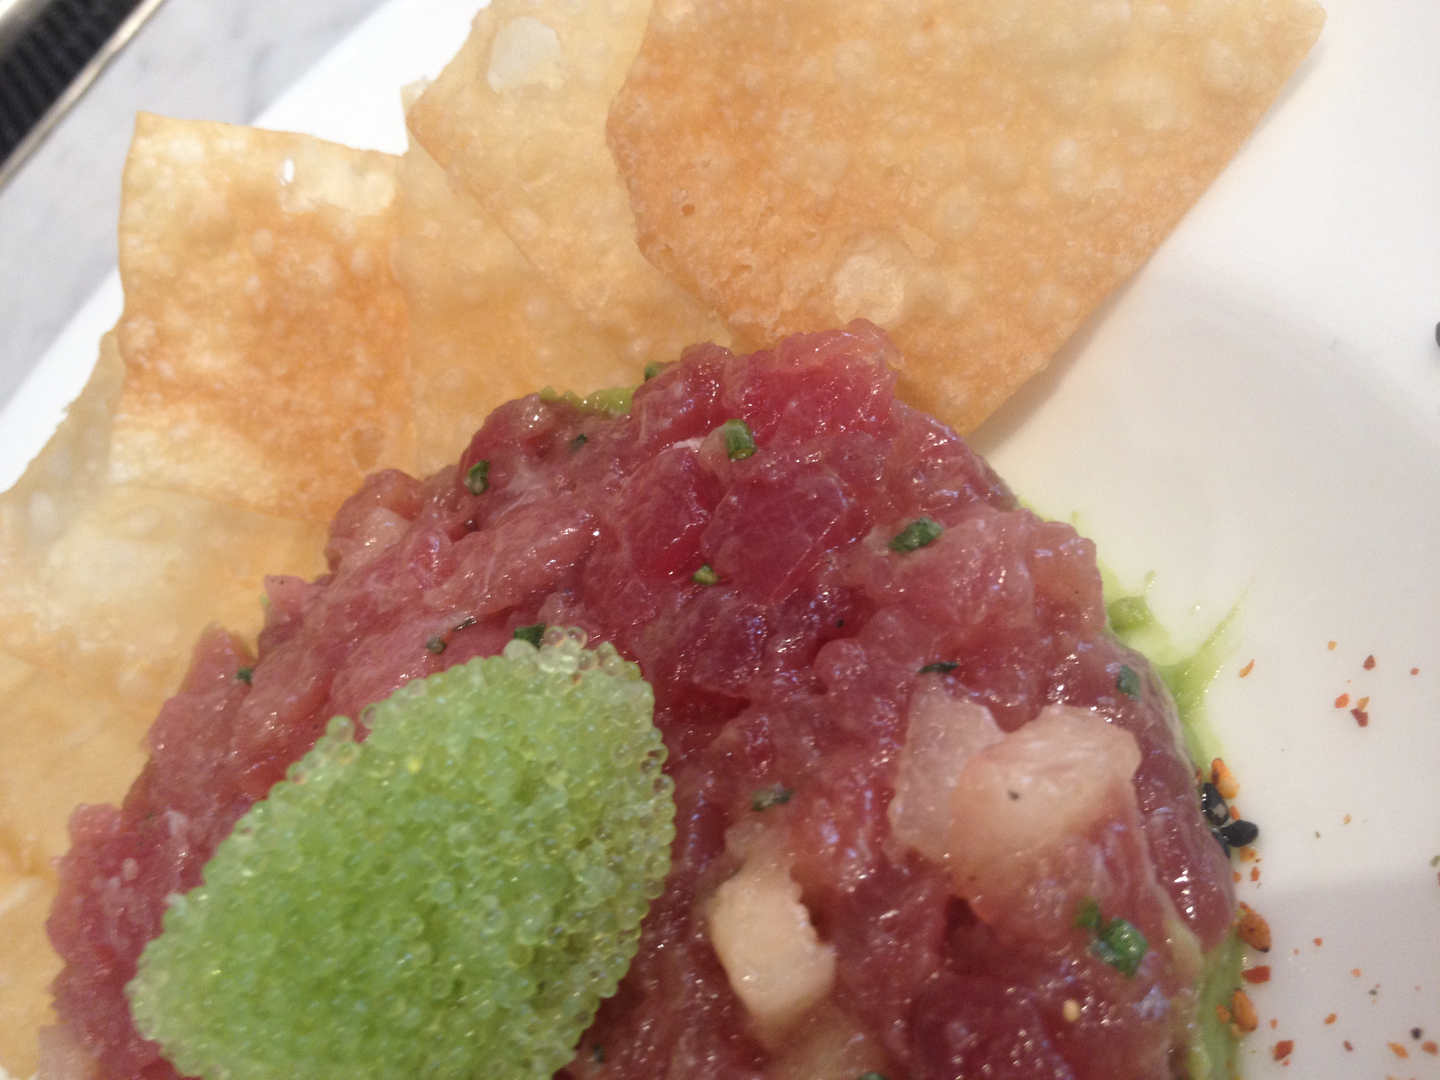 Tuna Poke Salad Topped with Tobiko Served with a Side of Tortilla Chips